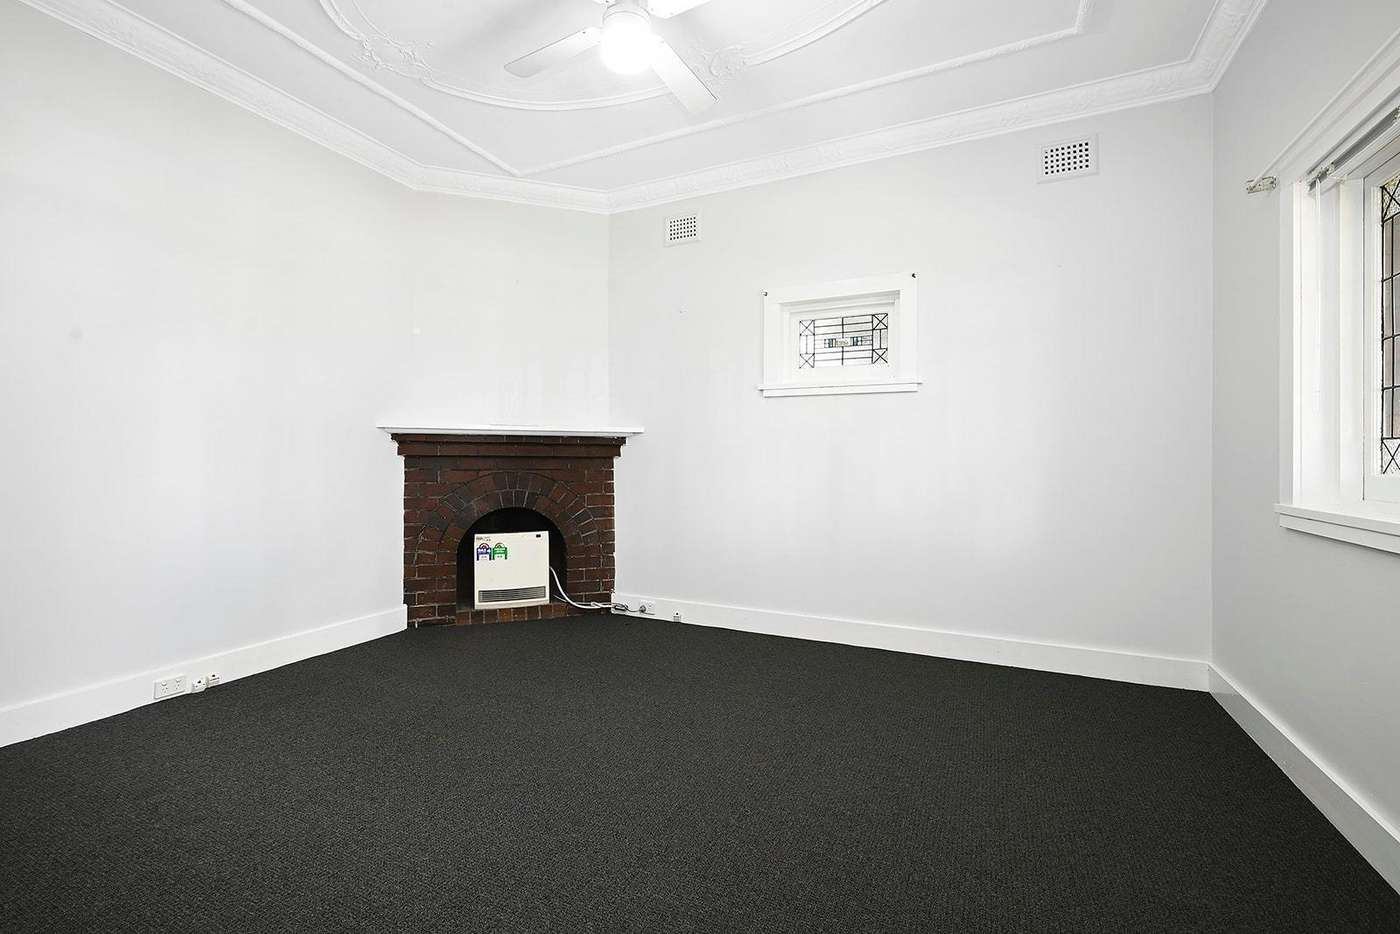 Main view of Homely apartment listing, 30 Bowden Street, Ryde NSW 2112